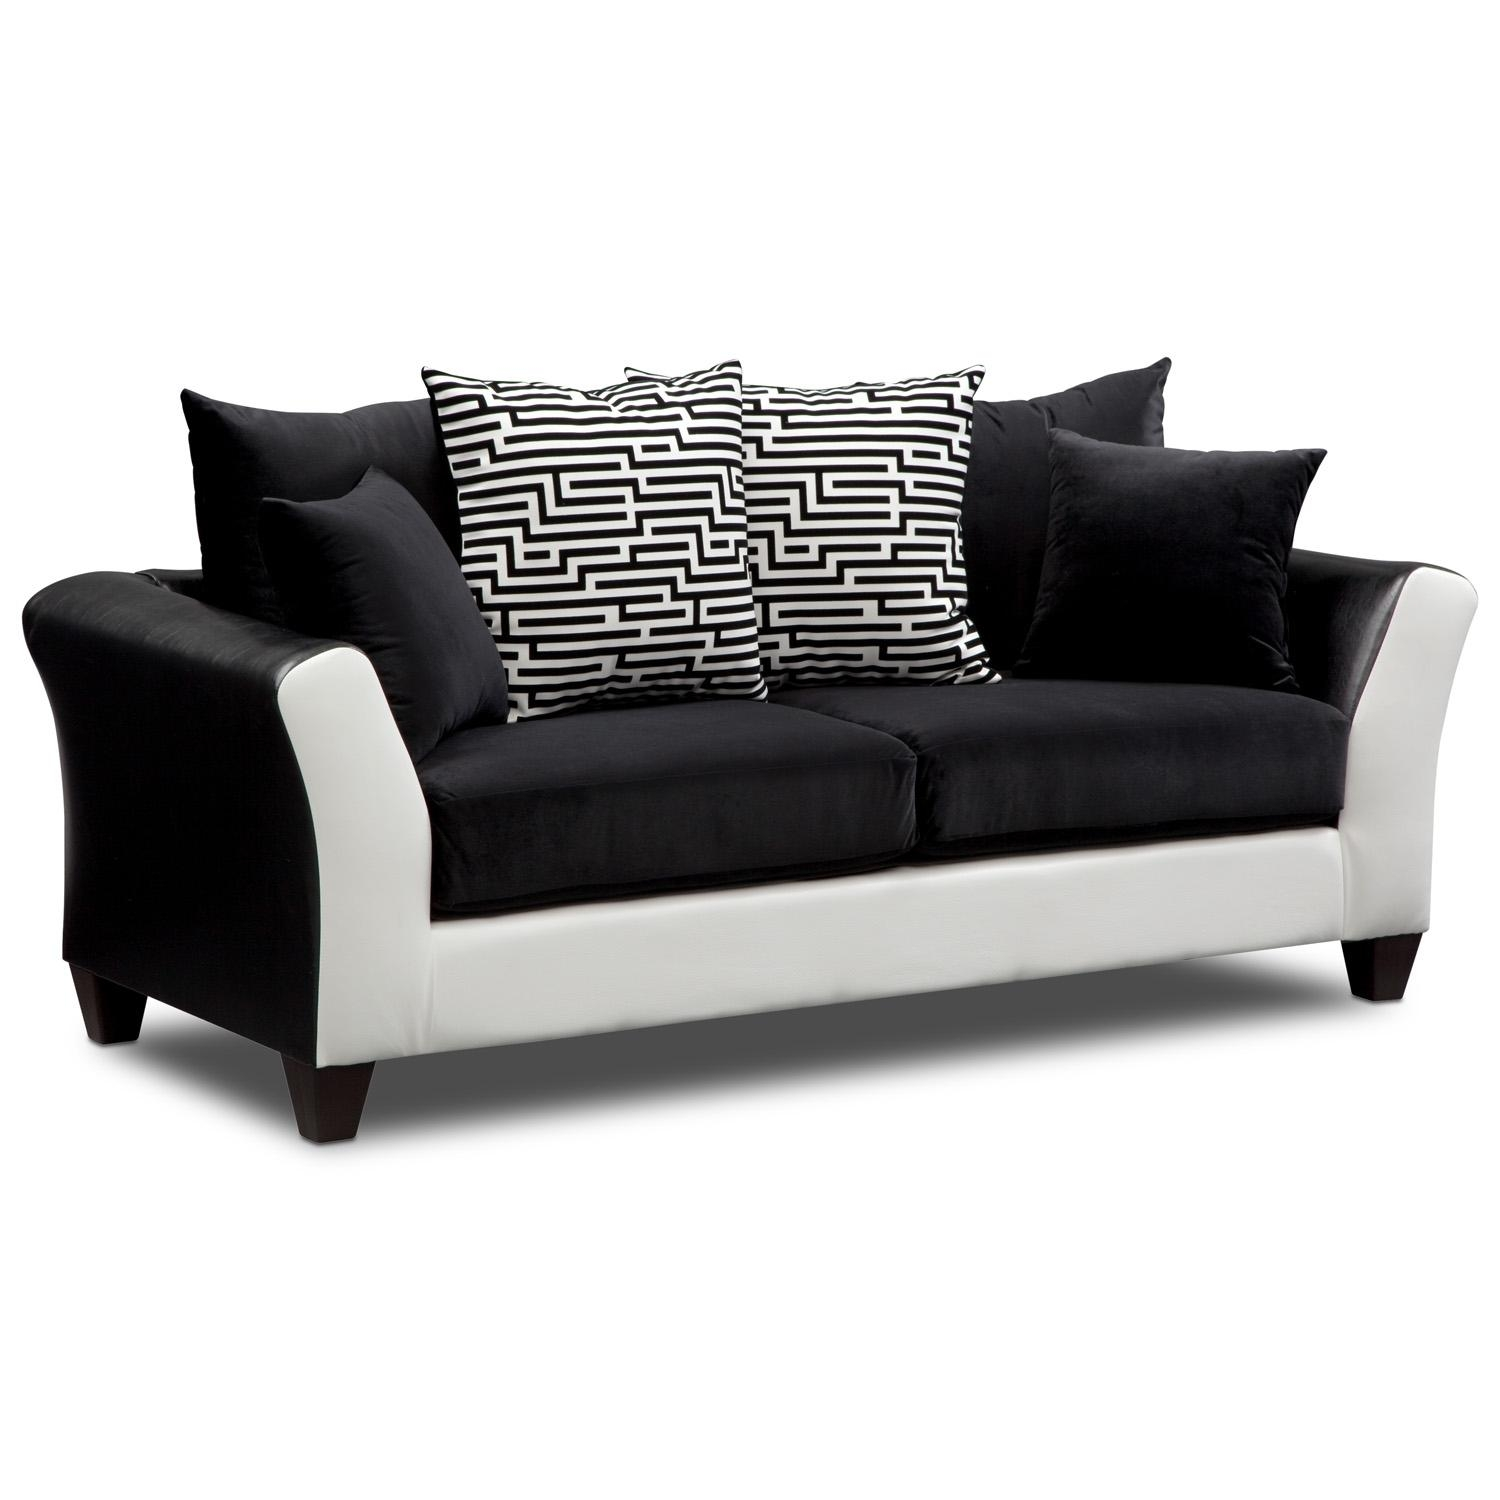 Furniture: Sofas And Sectionals | Sectional Sofa With Recliner For Value City Sofas (Image 5 of 20)